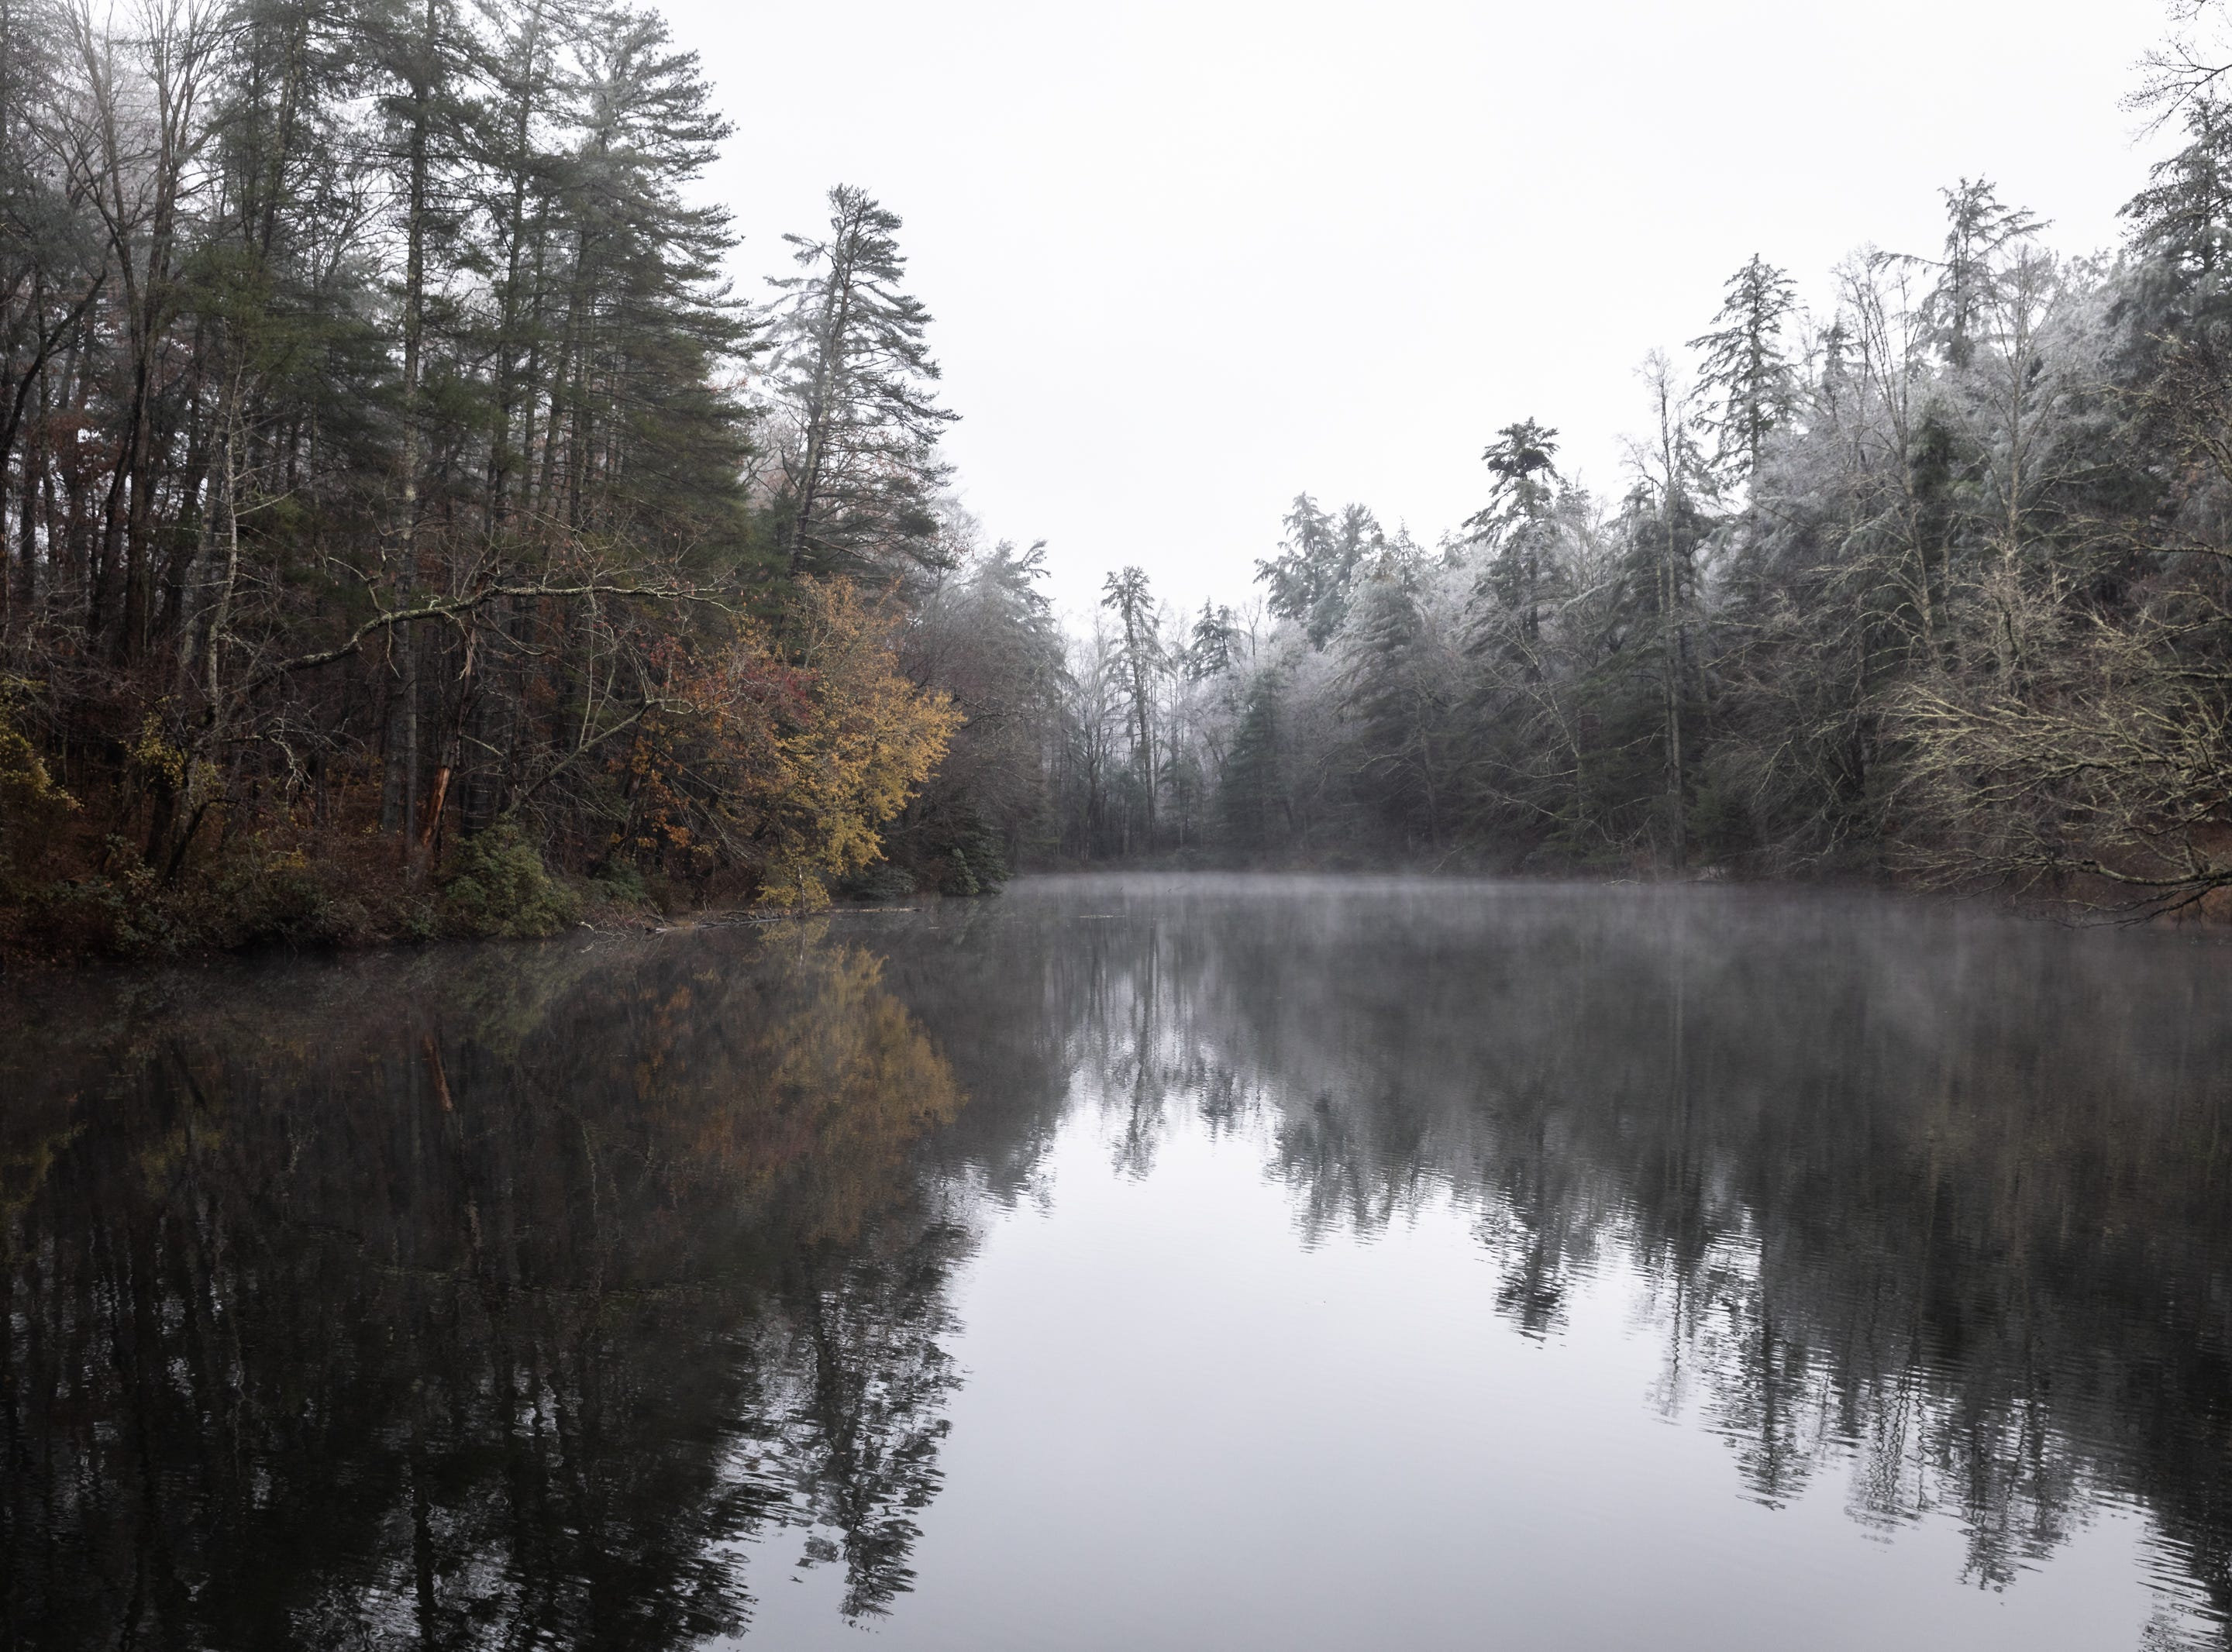 Fog rises from the pond at the Carl Sandburg home in Flat Rock where the park celebrated its 50th anniversary Nov. 24, 2018, with their Christmas at Connemara event featuring live music, storytellers and tours of the home.